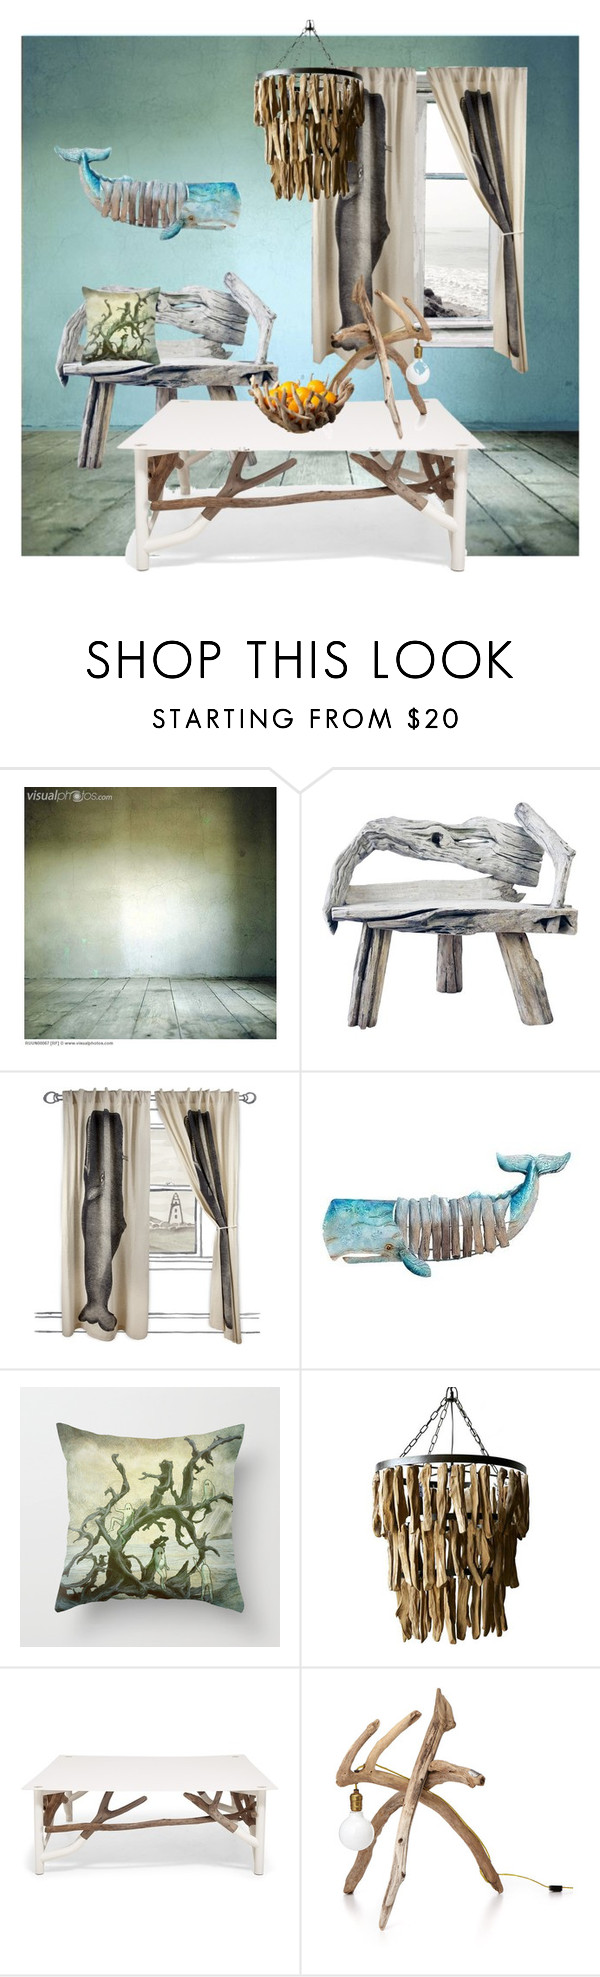 """""""Driftwood Room"""" by synkopika ❤ liked on Polyvore featuring interior, interiors, interior design, home, home decor, interior decorating, Thomaspaul, Dot & Bo and OKA"""